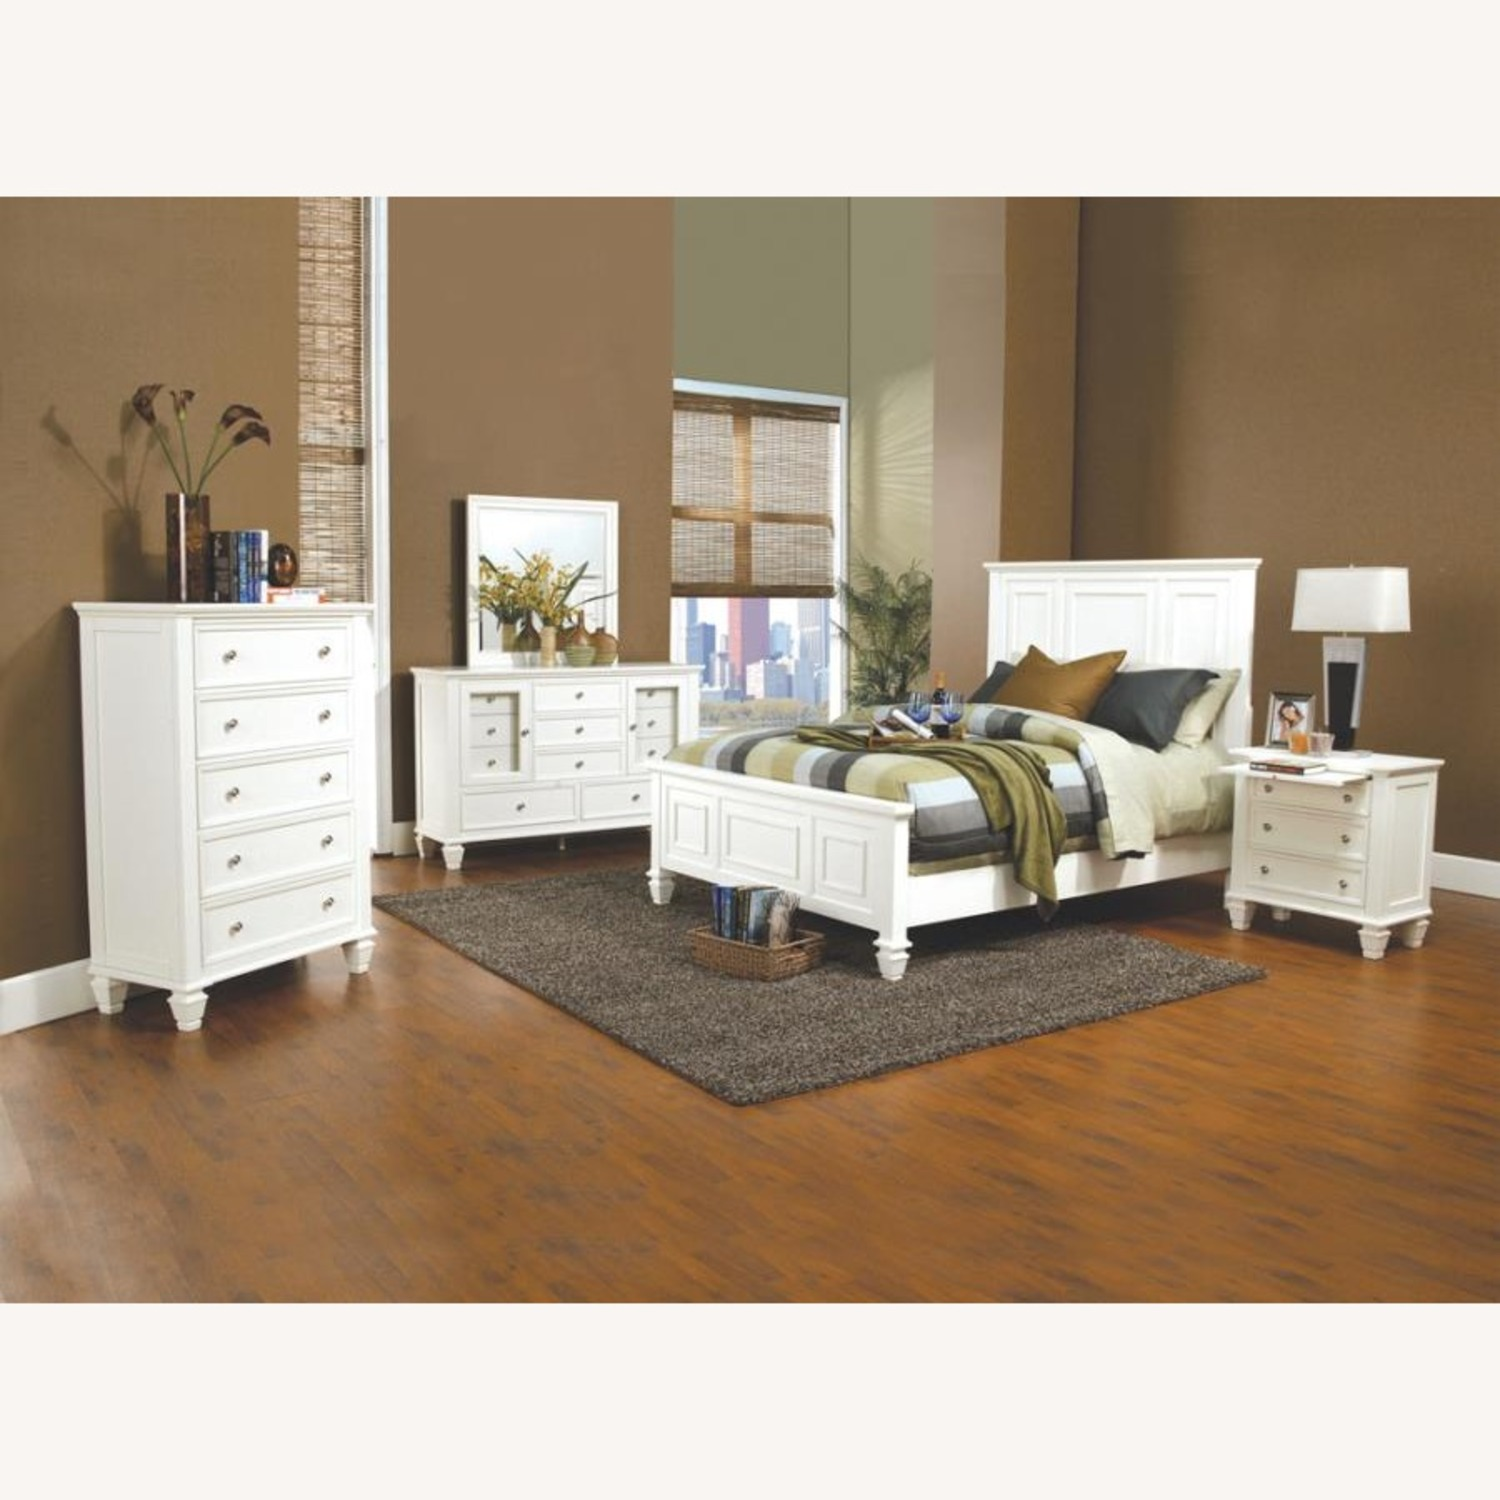 Cottage-Style Queen Bed In White Finish - image-2